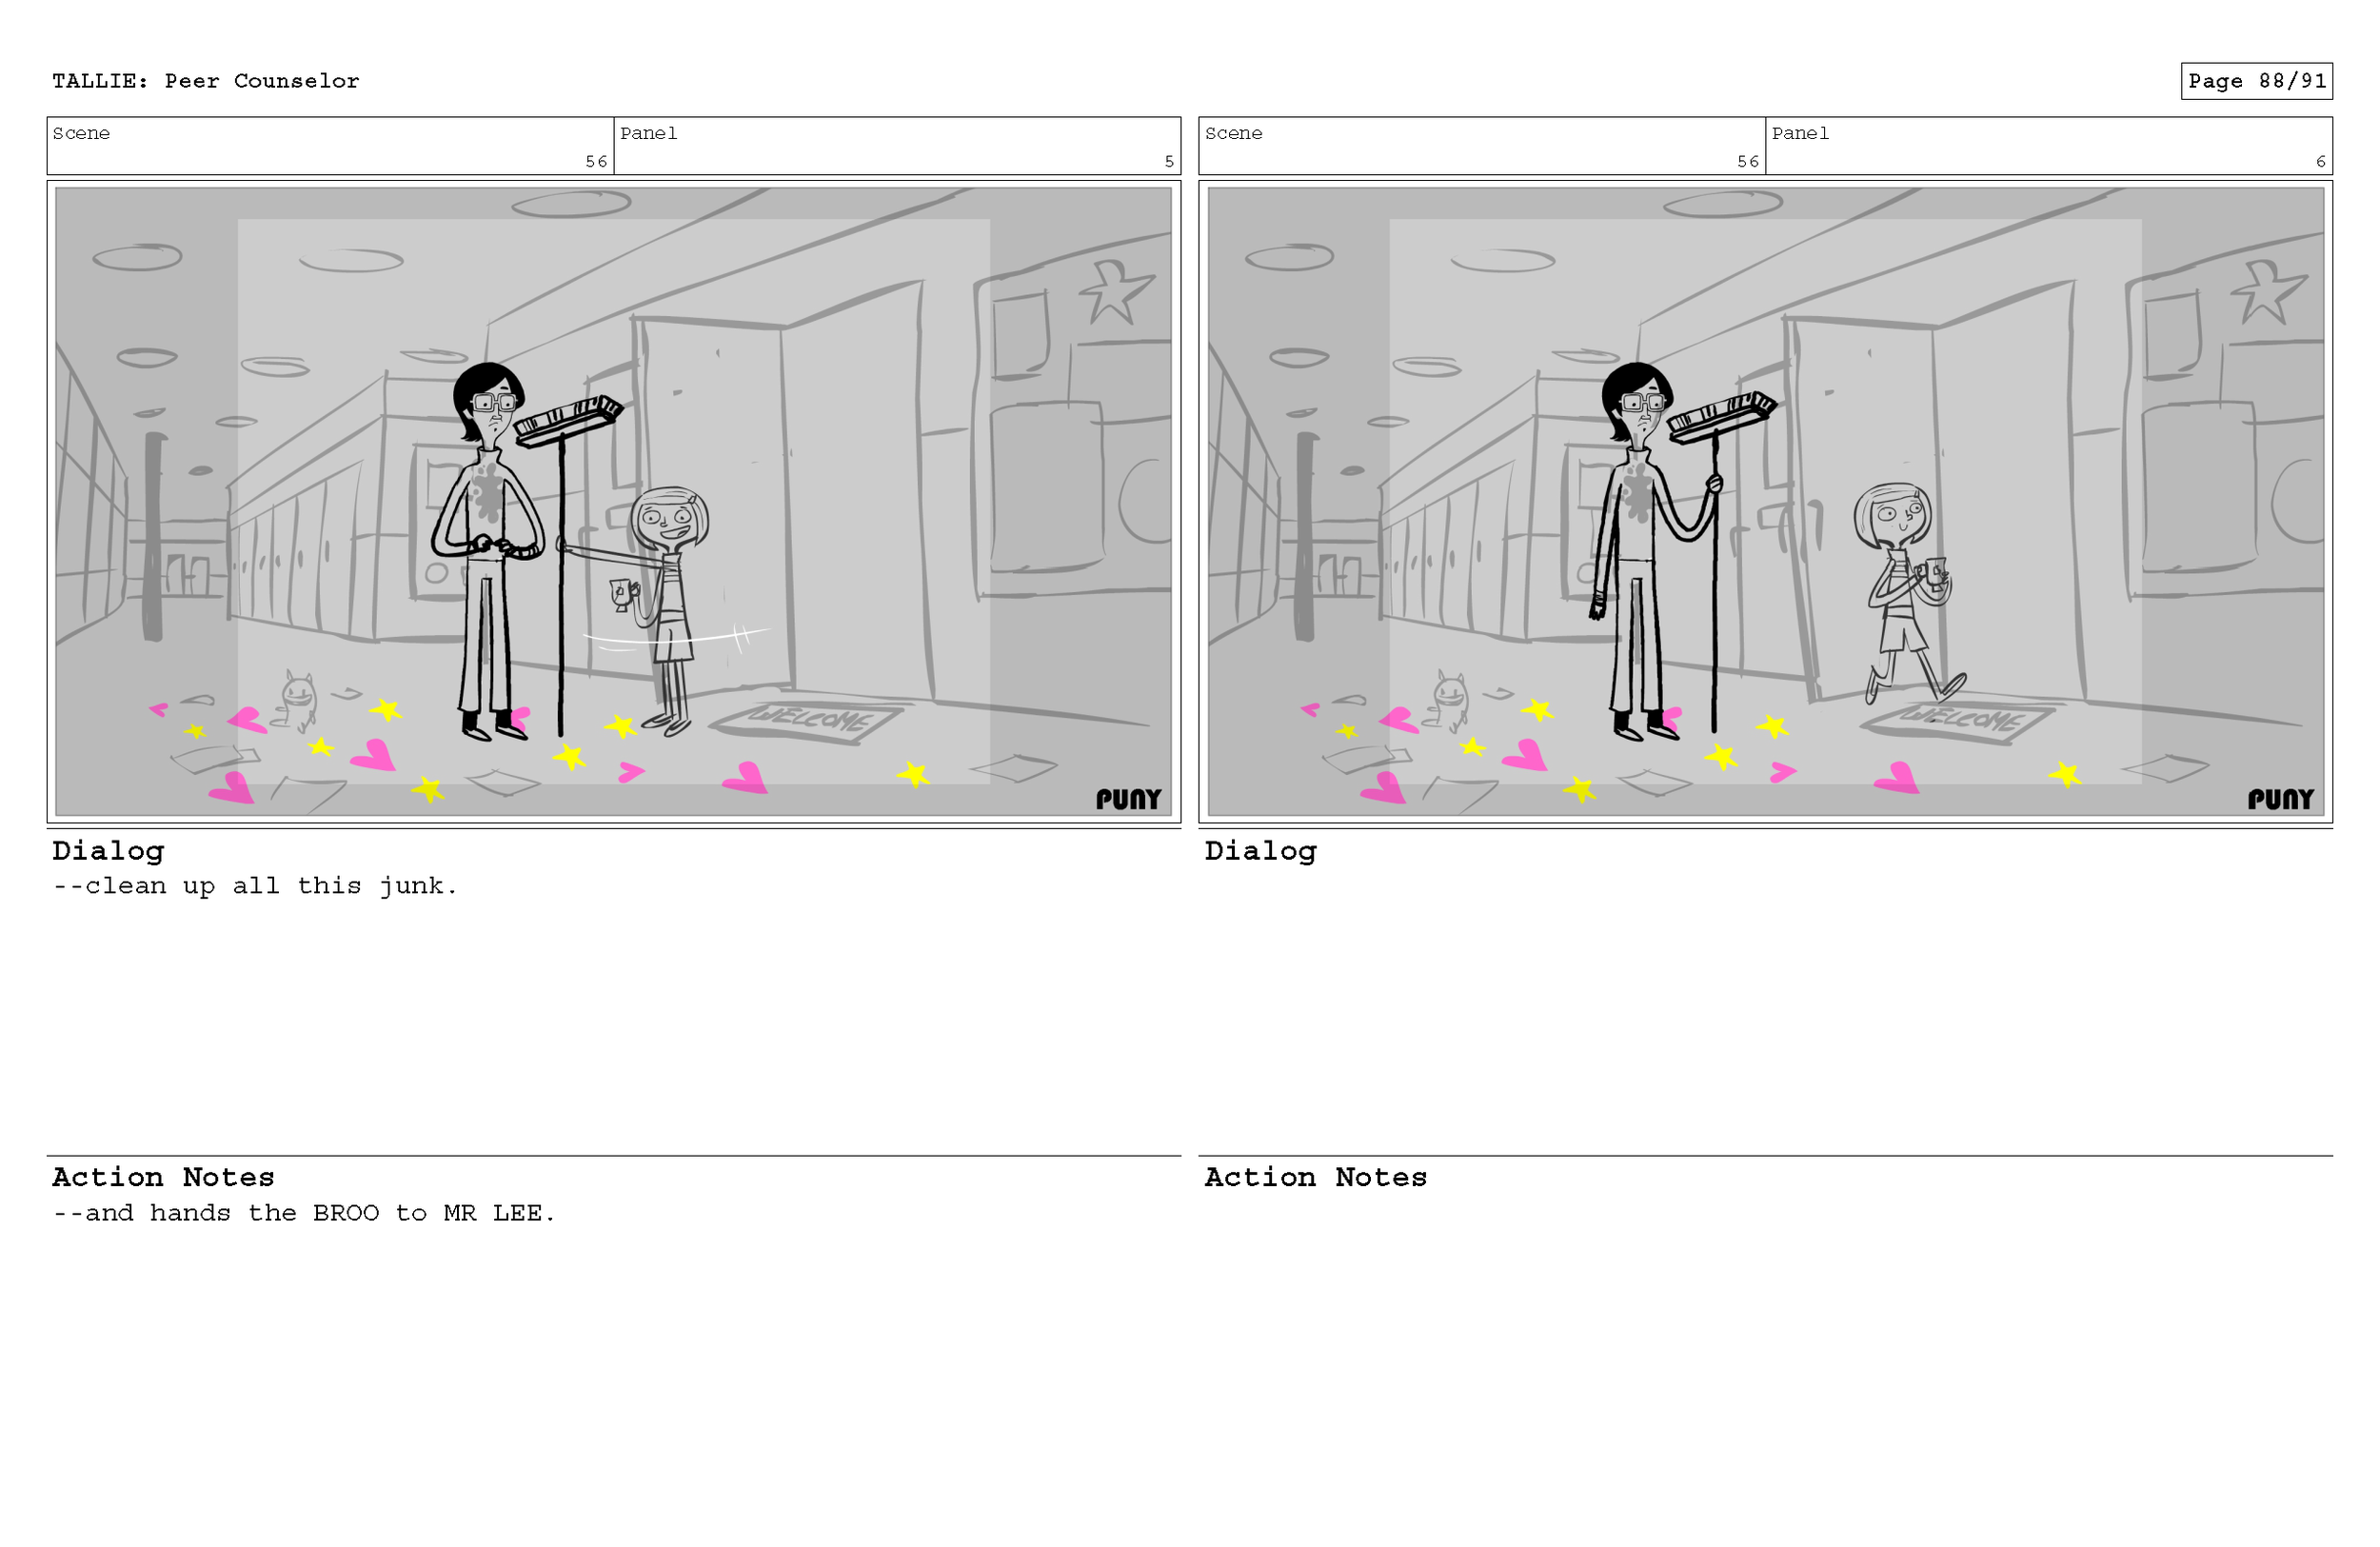 MikeOwens_STORYBOARDS_TallieSilverman_Page_89.png